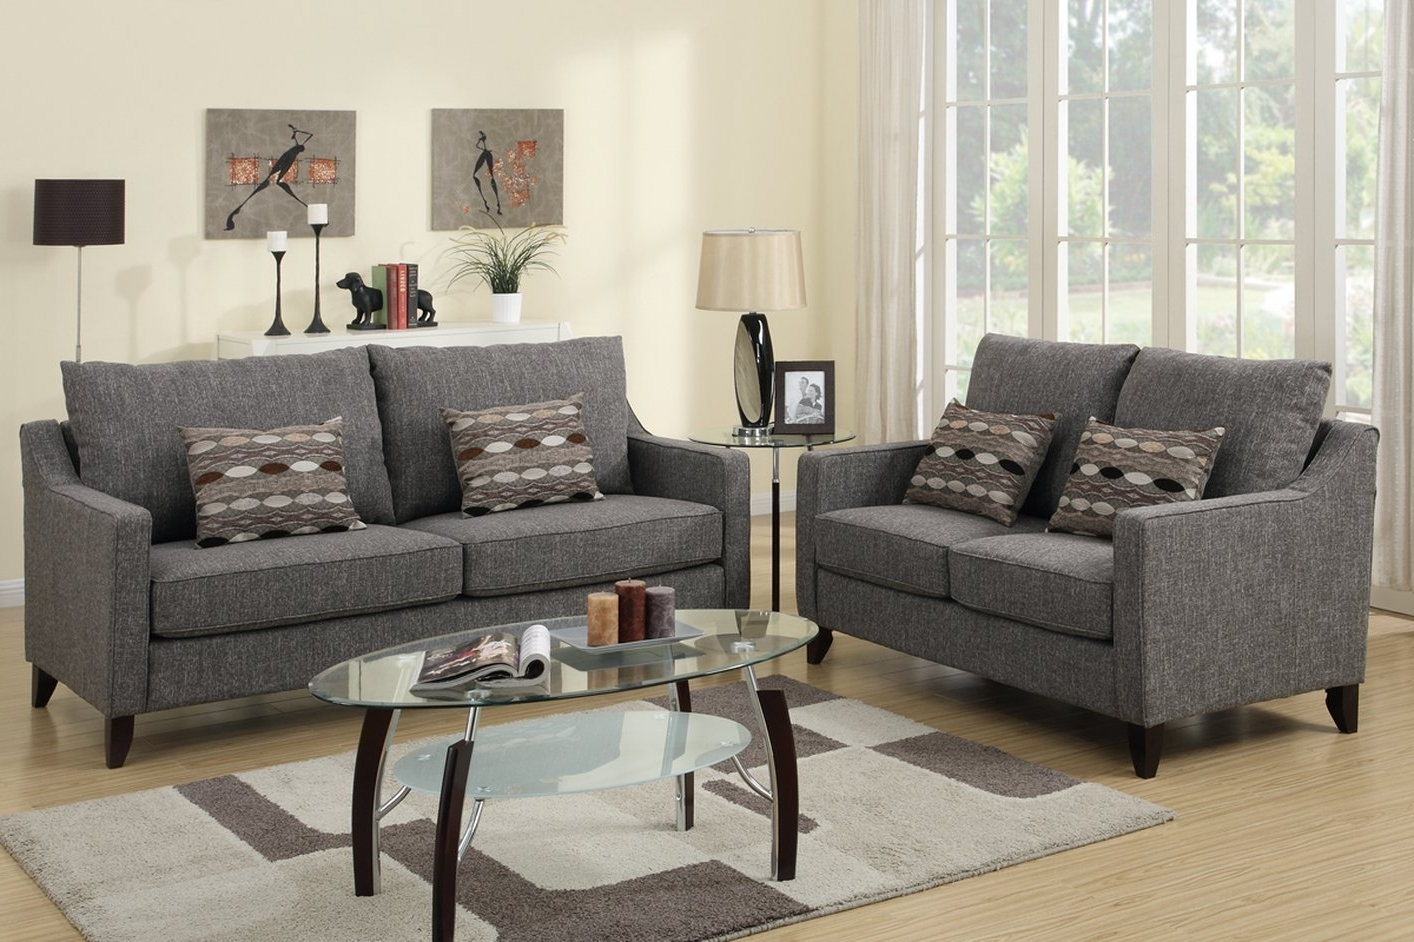 Newest Avery Grey Fabric Sofa And Loveseat Set – Steal A Sofa Furniture For Grey Sofa Chairs (View 13 of 20)